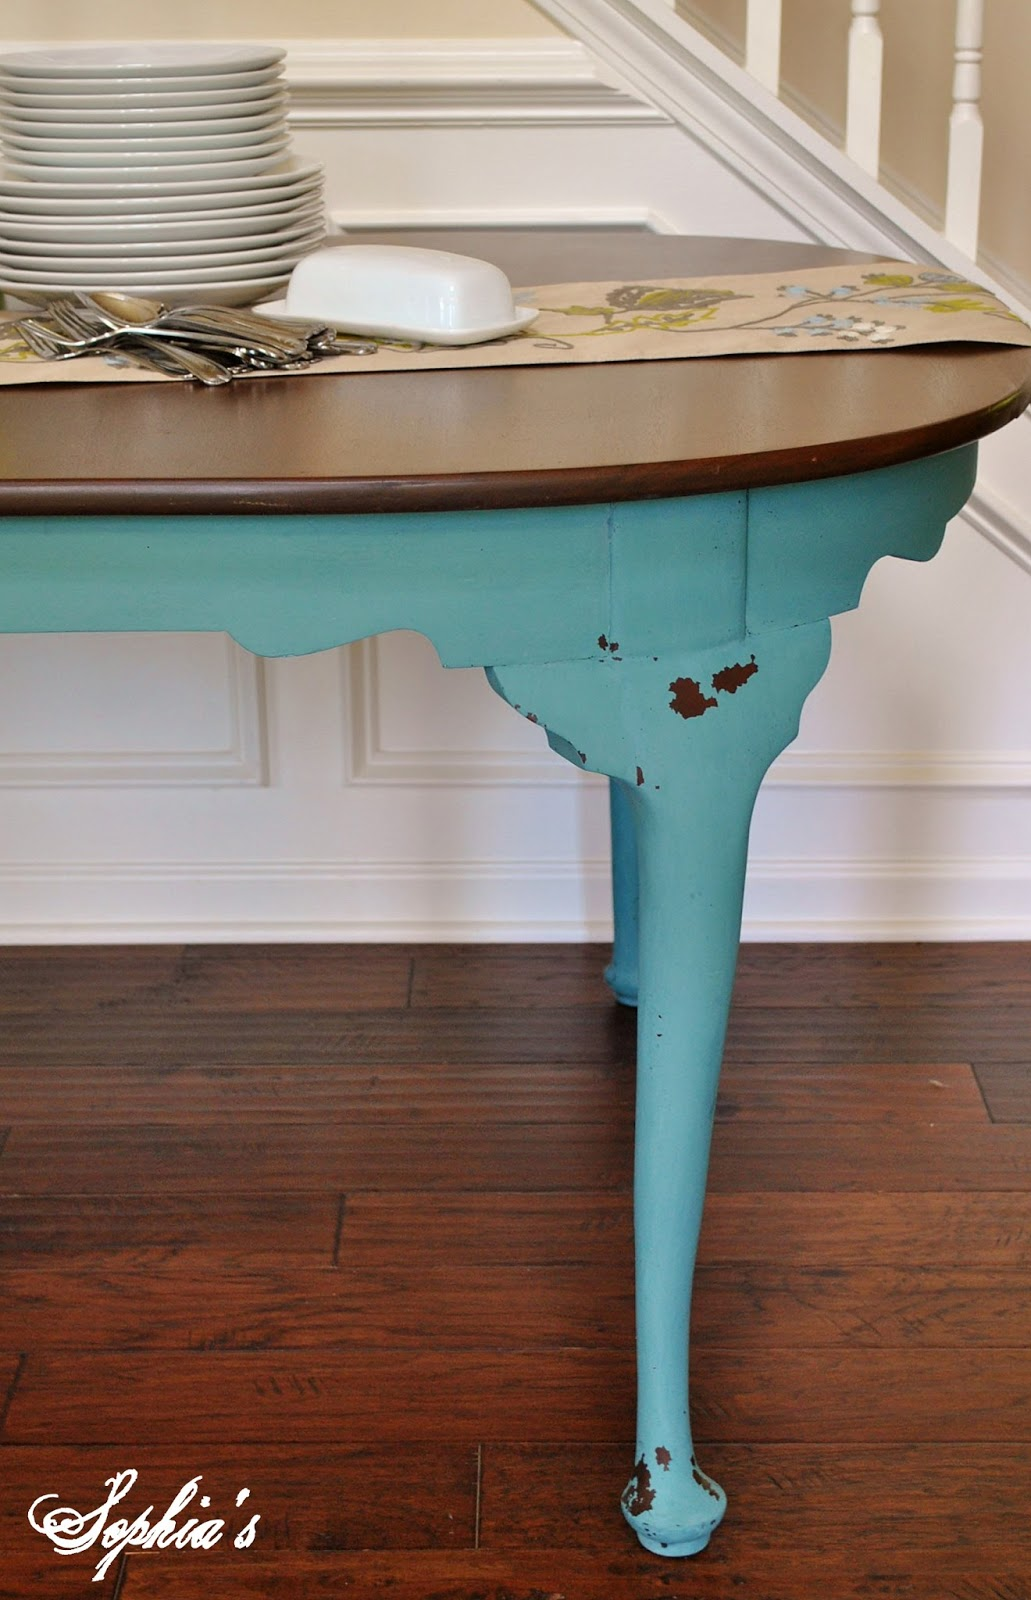 Sophia\'s: Two-toned Dresser and Kitchen Scale Dining Table